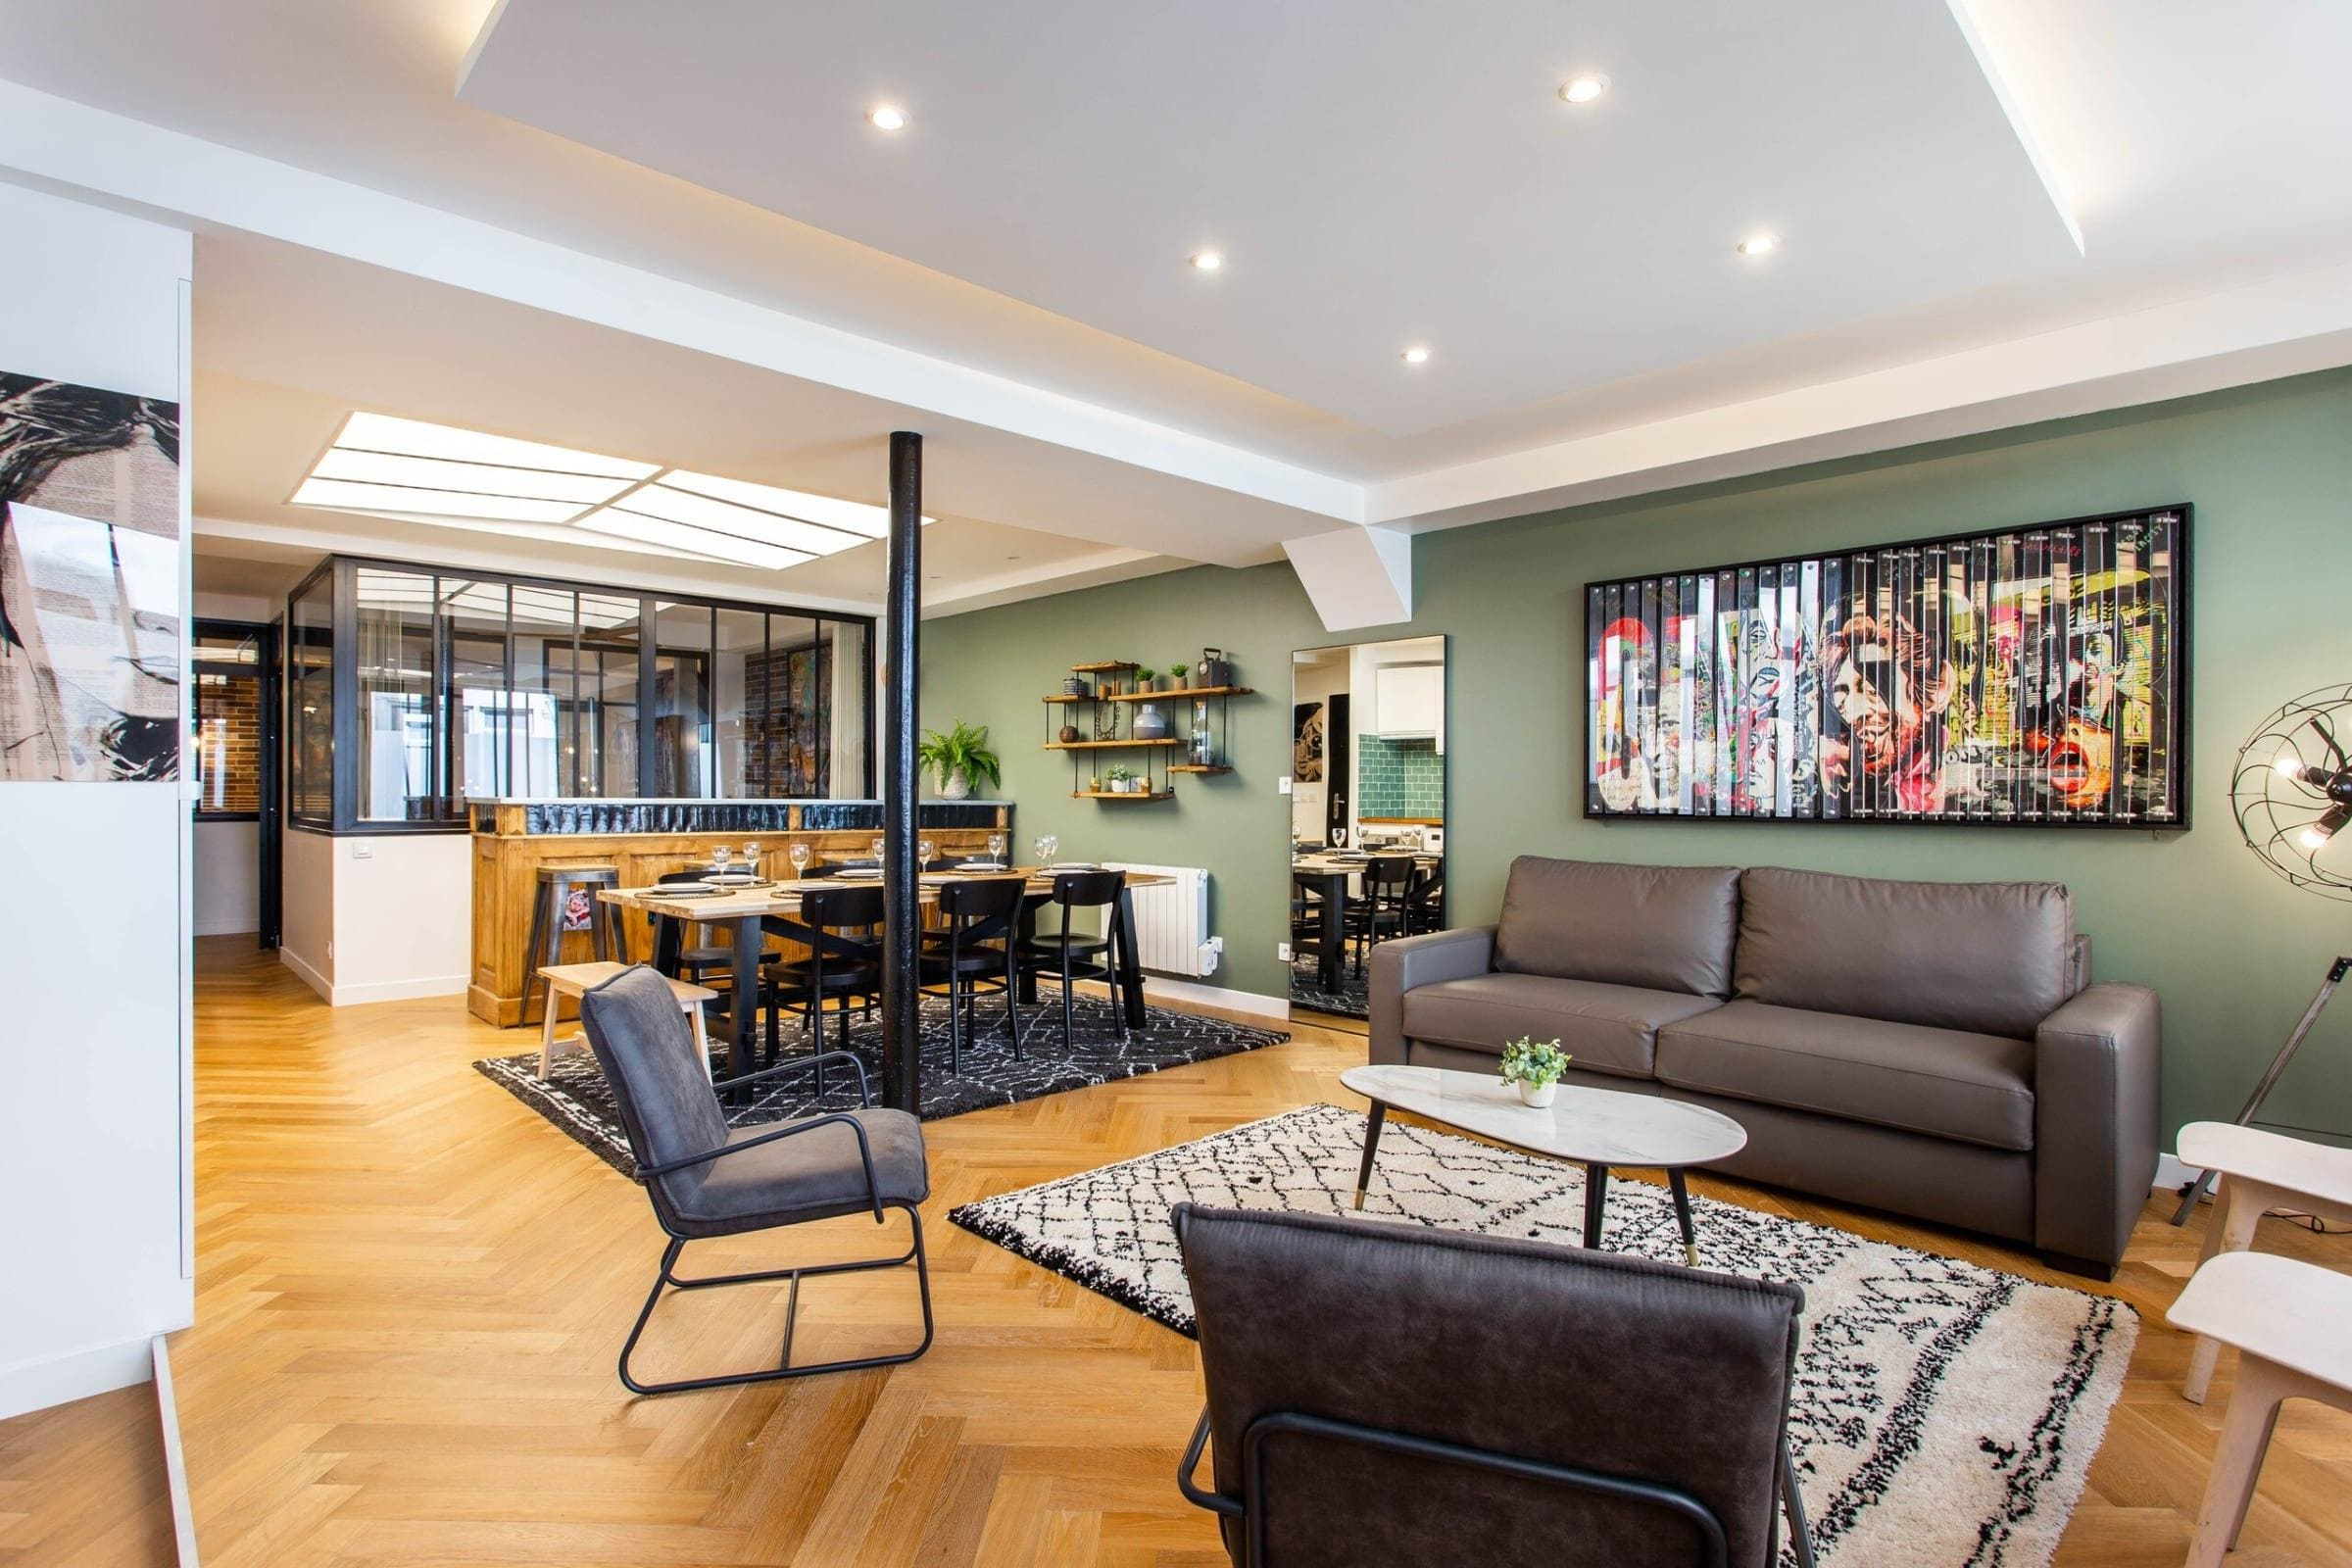 Property Image 1 - Lavish Apartment with Trendy Decor at Popincourt